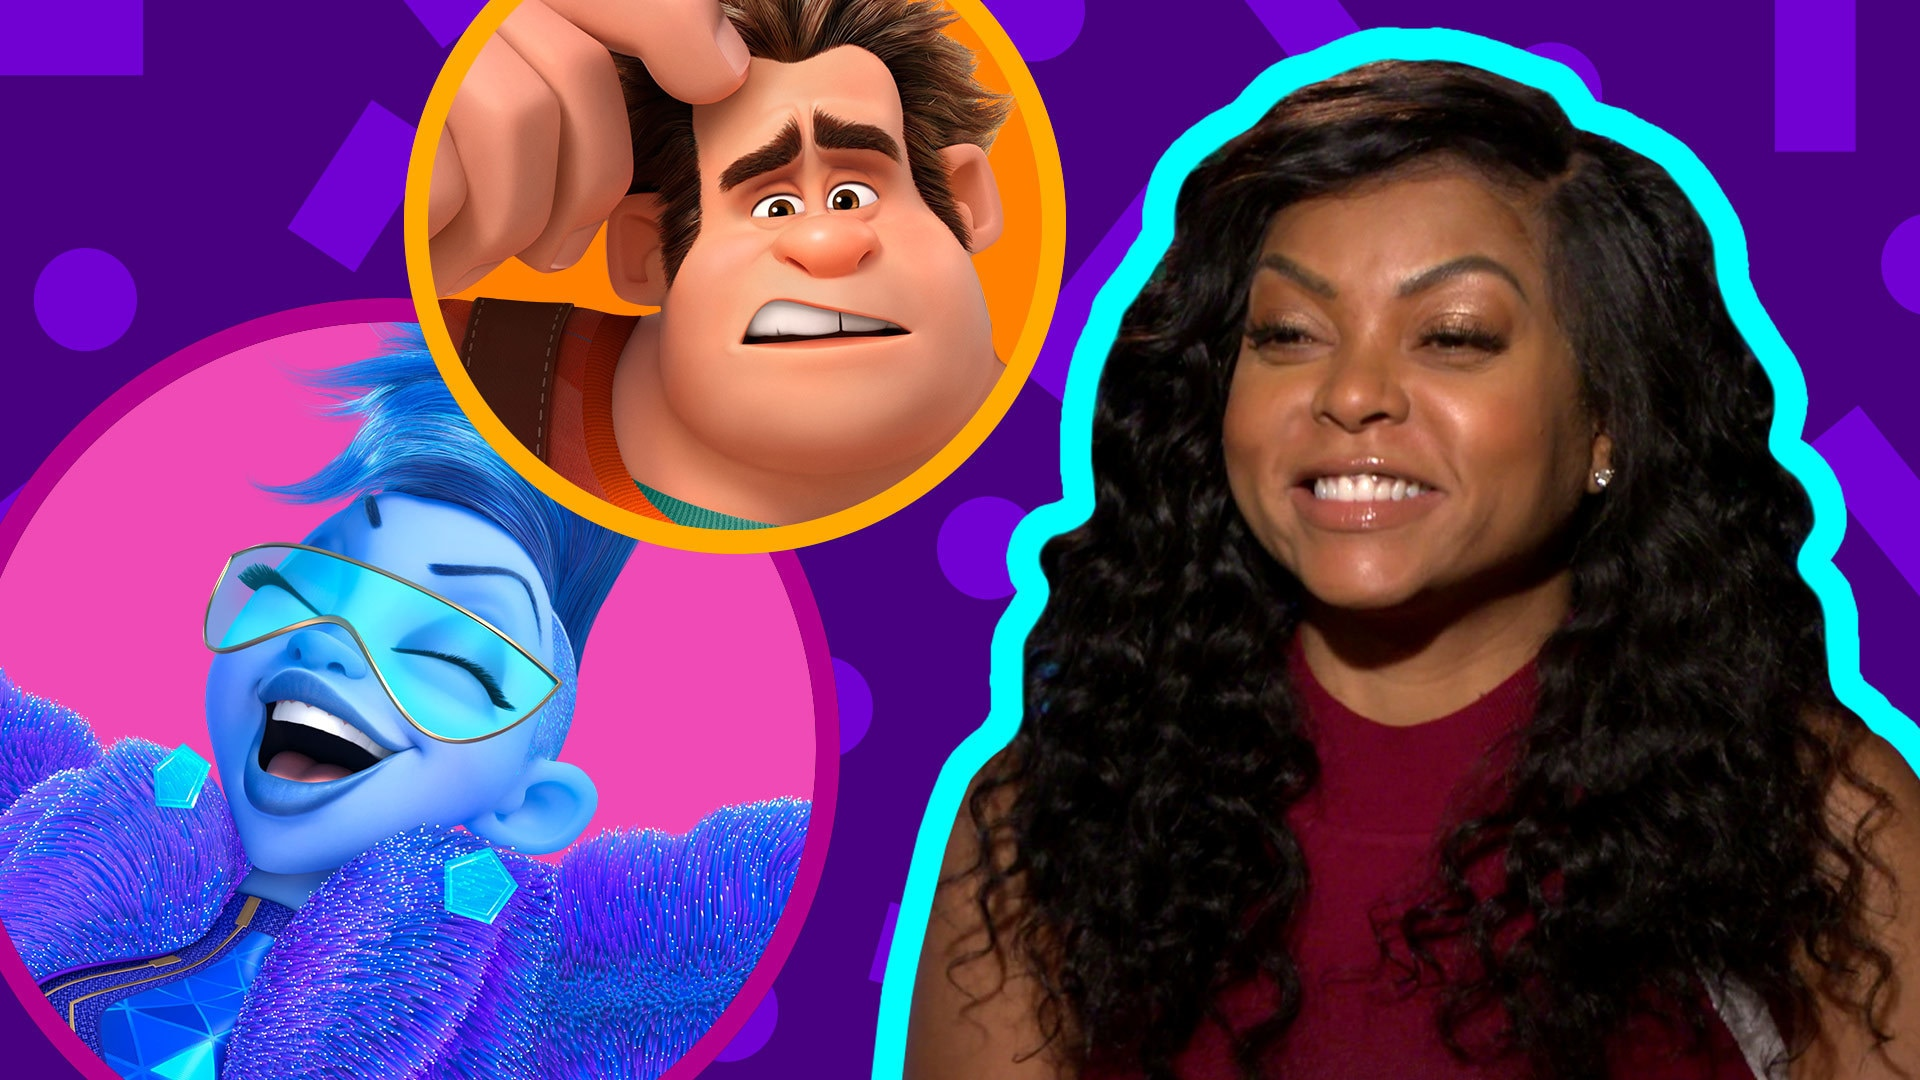 Taraji P. Henson Plays a Game of Yesss or Nooo | Oh My Disney